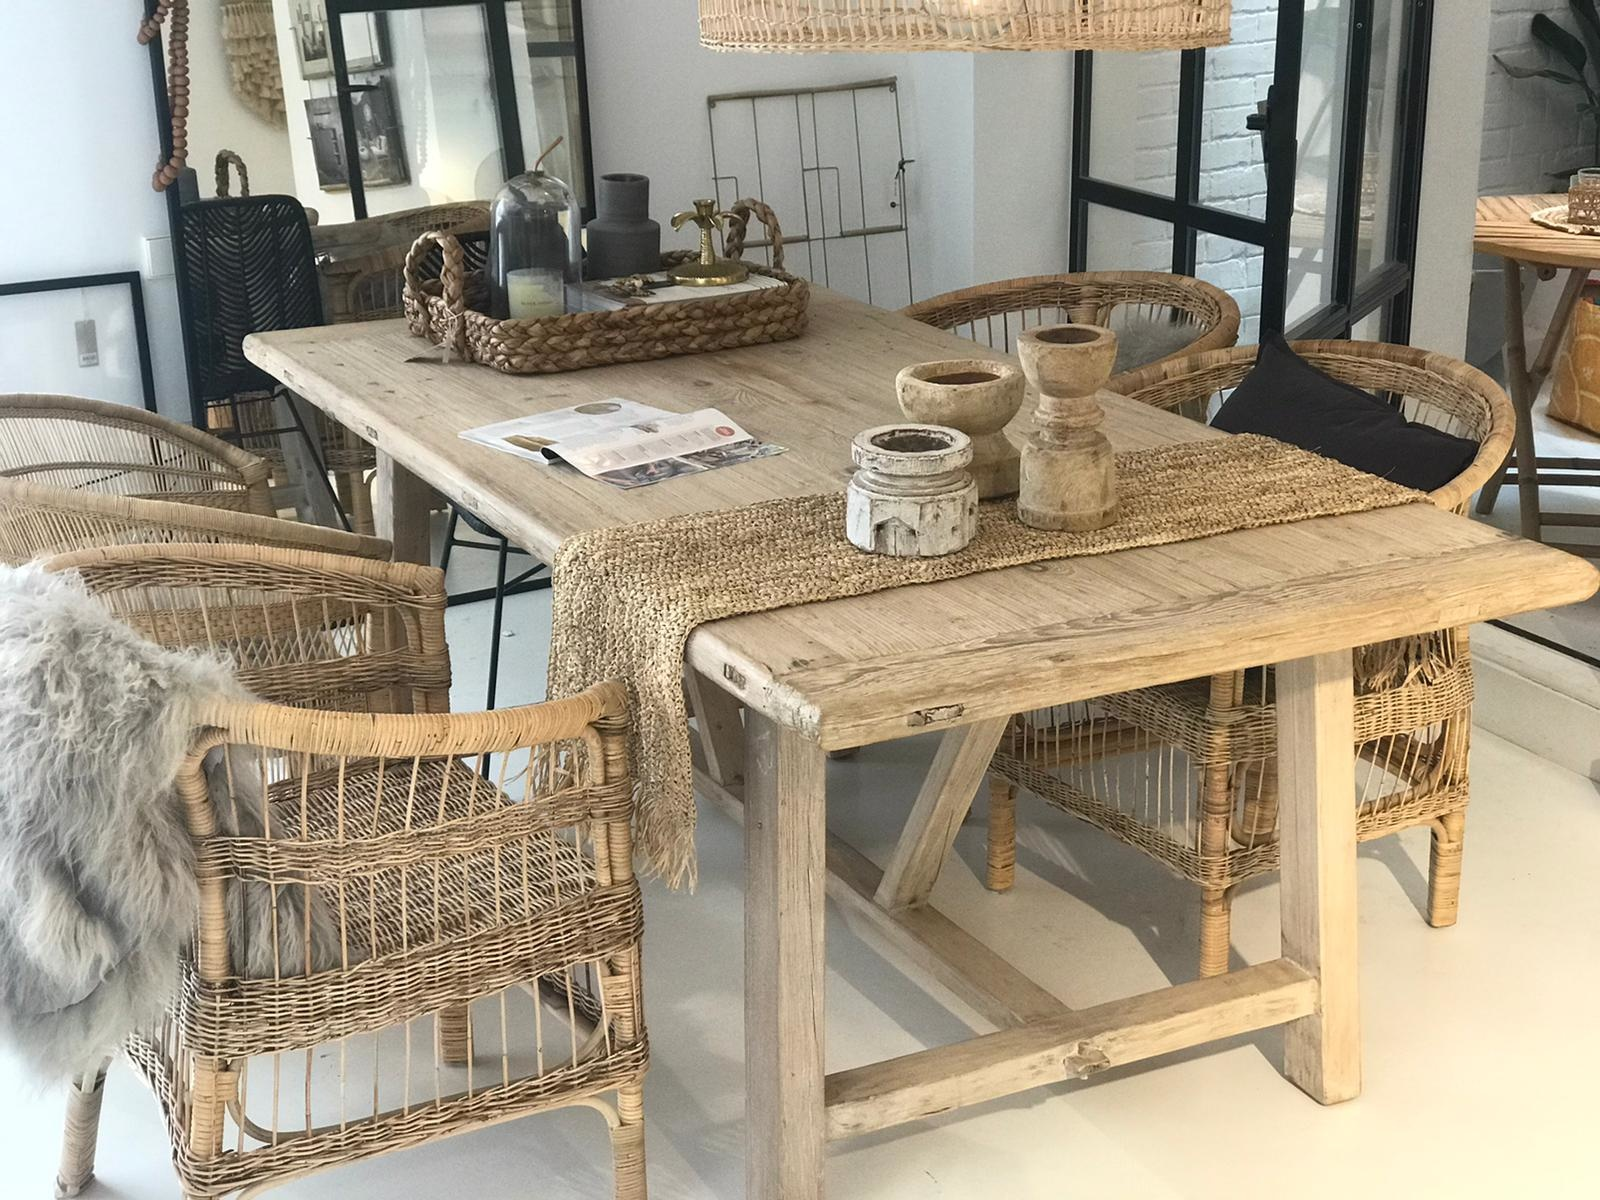 Snowdrops Copenhagen Dining room table recycled pine wood - 200x100xh78H - unique piece